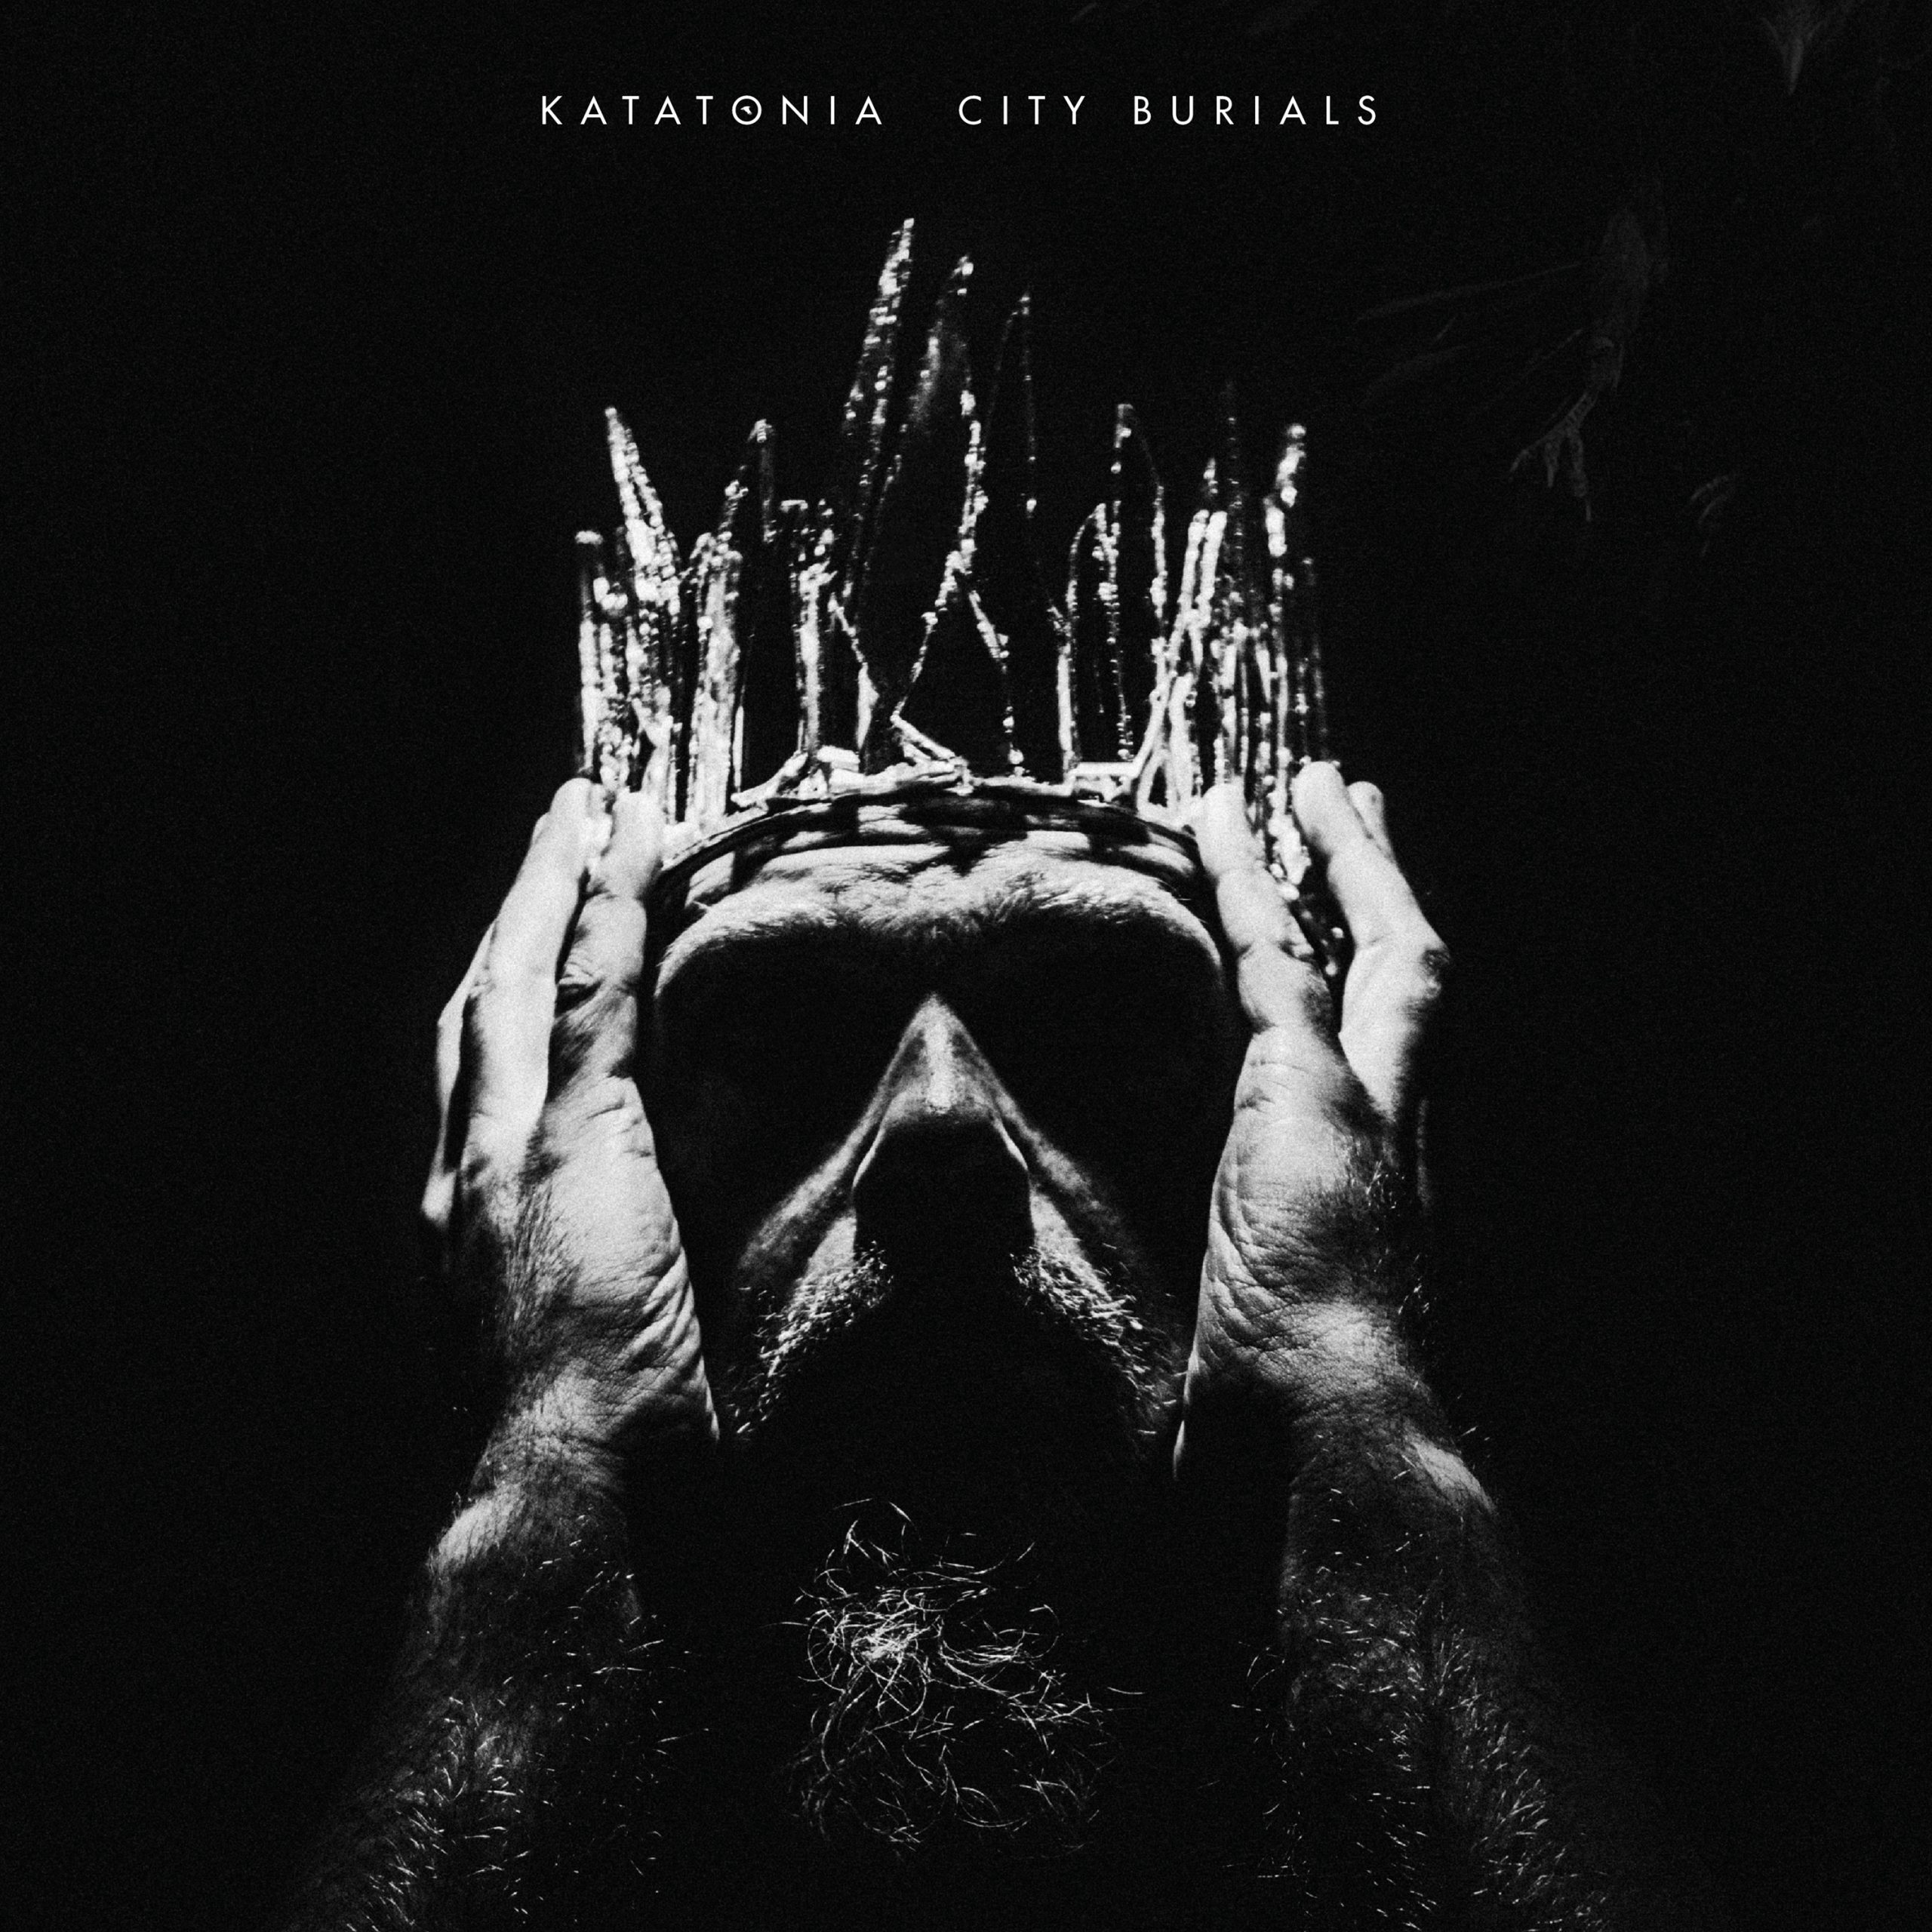 Disques-Katatonia-City-Burials-01-scaled-1.jpg